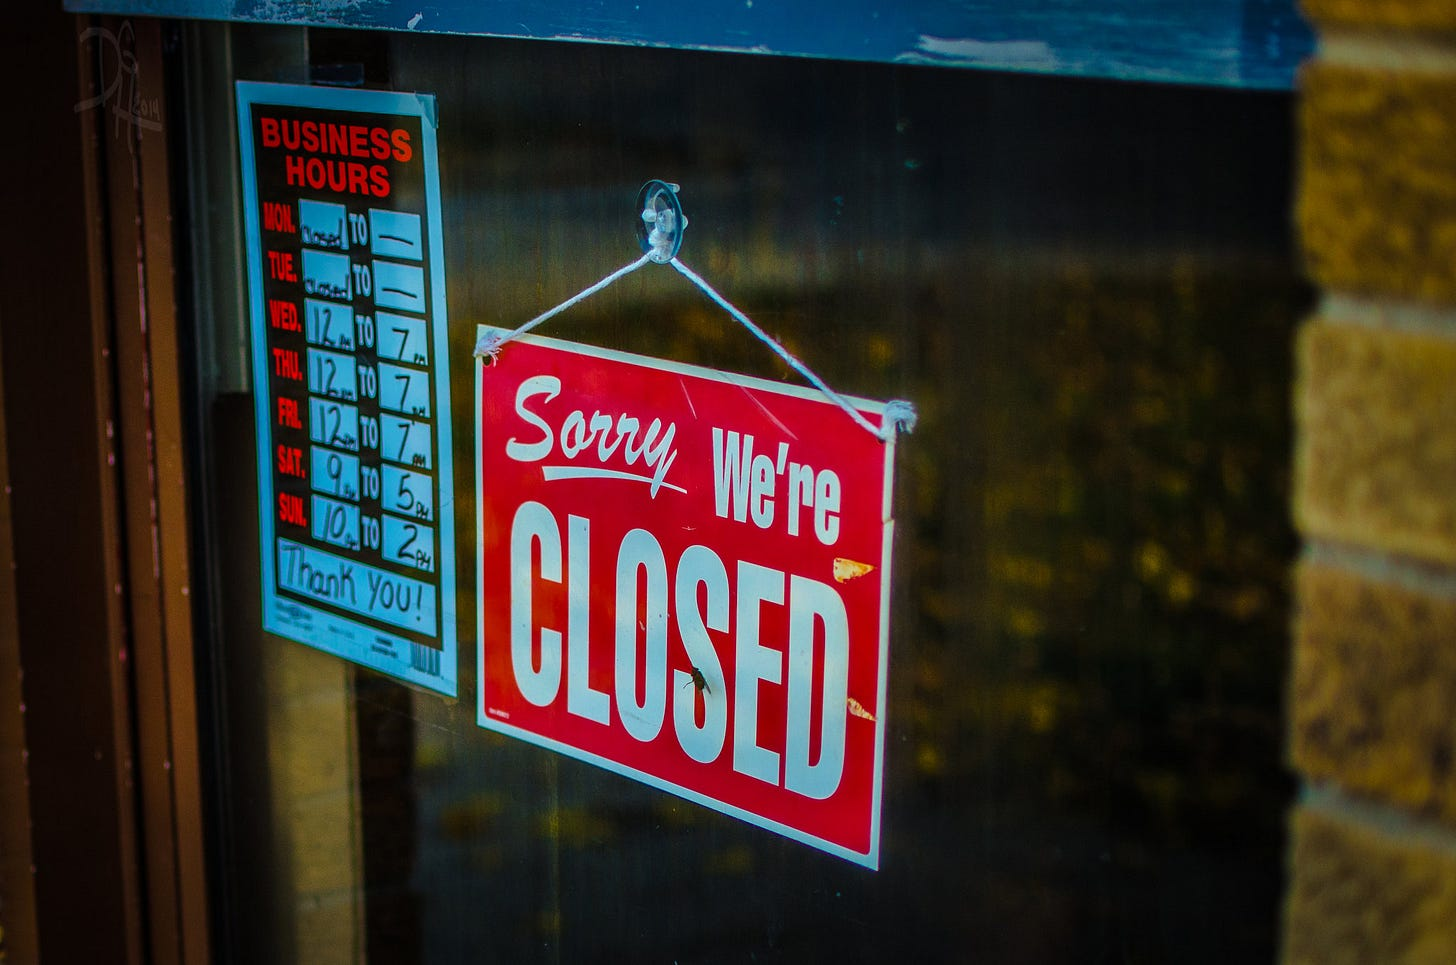 'Sorry, we're closed' sign